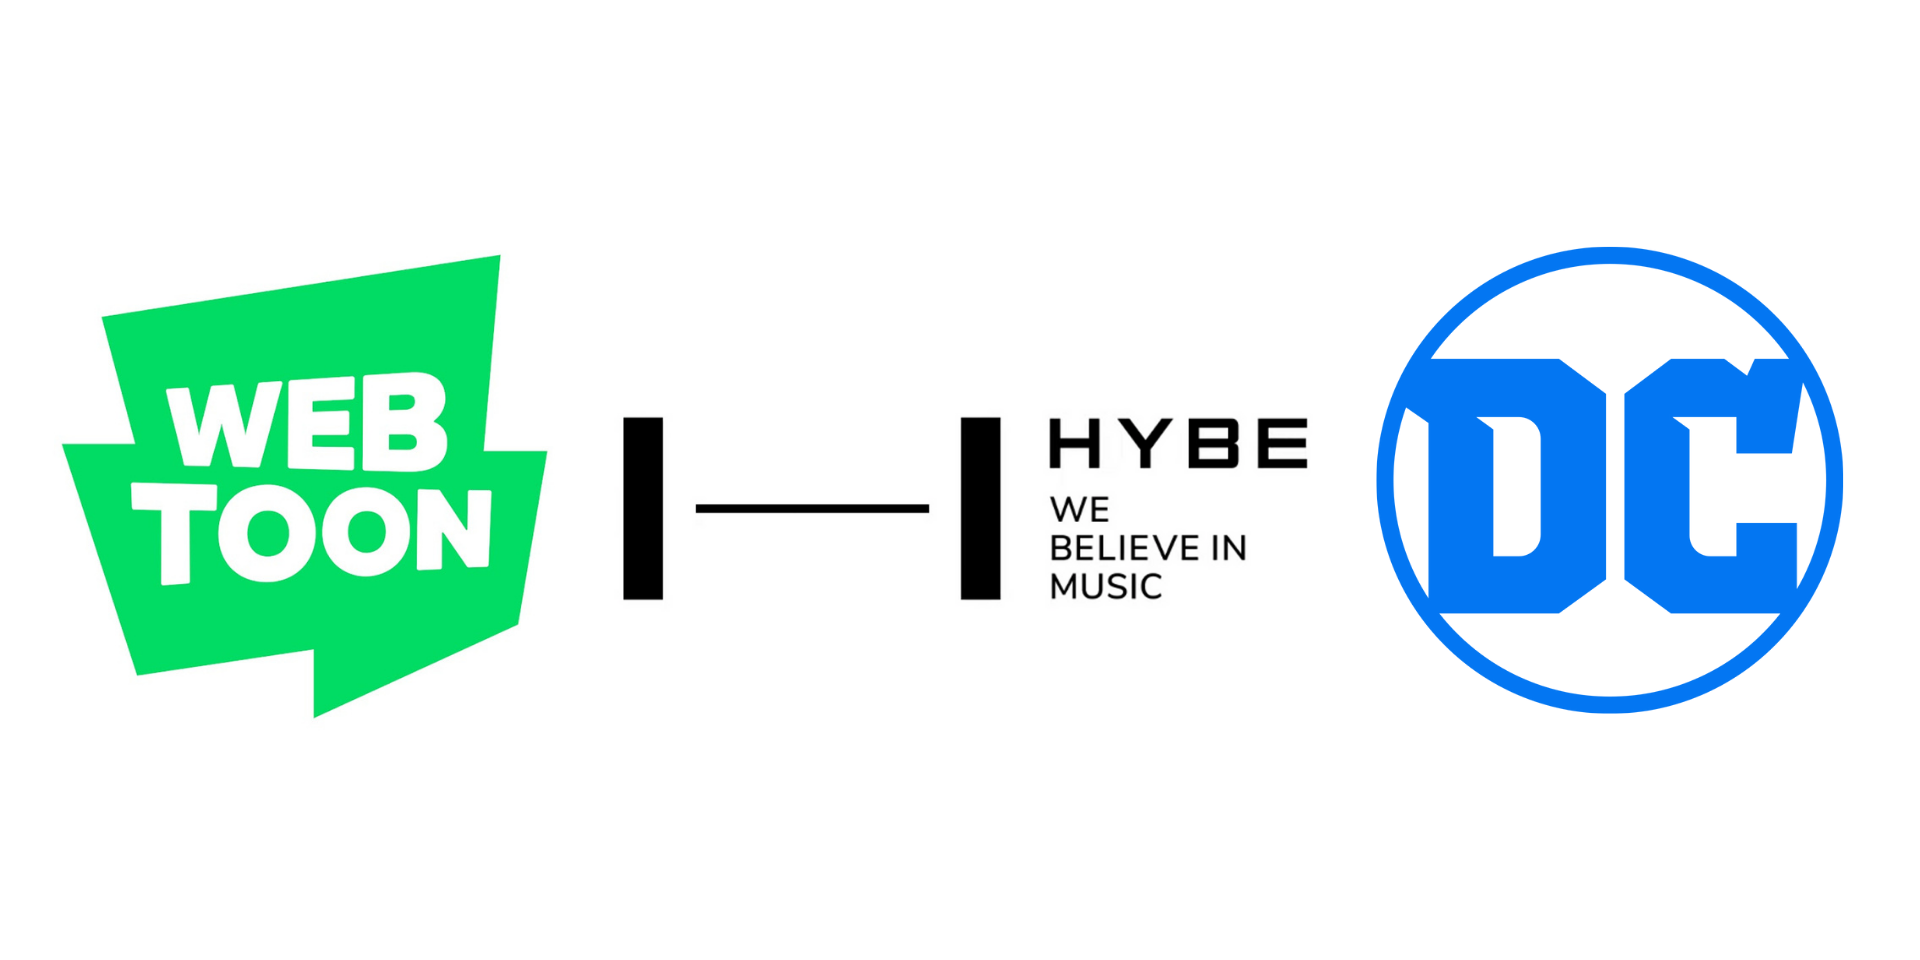 Naver Webtoon signs partnership with DC Comics and HYBE, to create BTS-inspired content